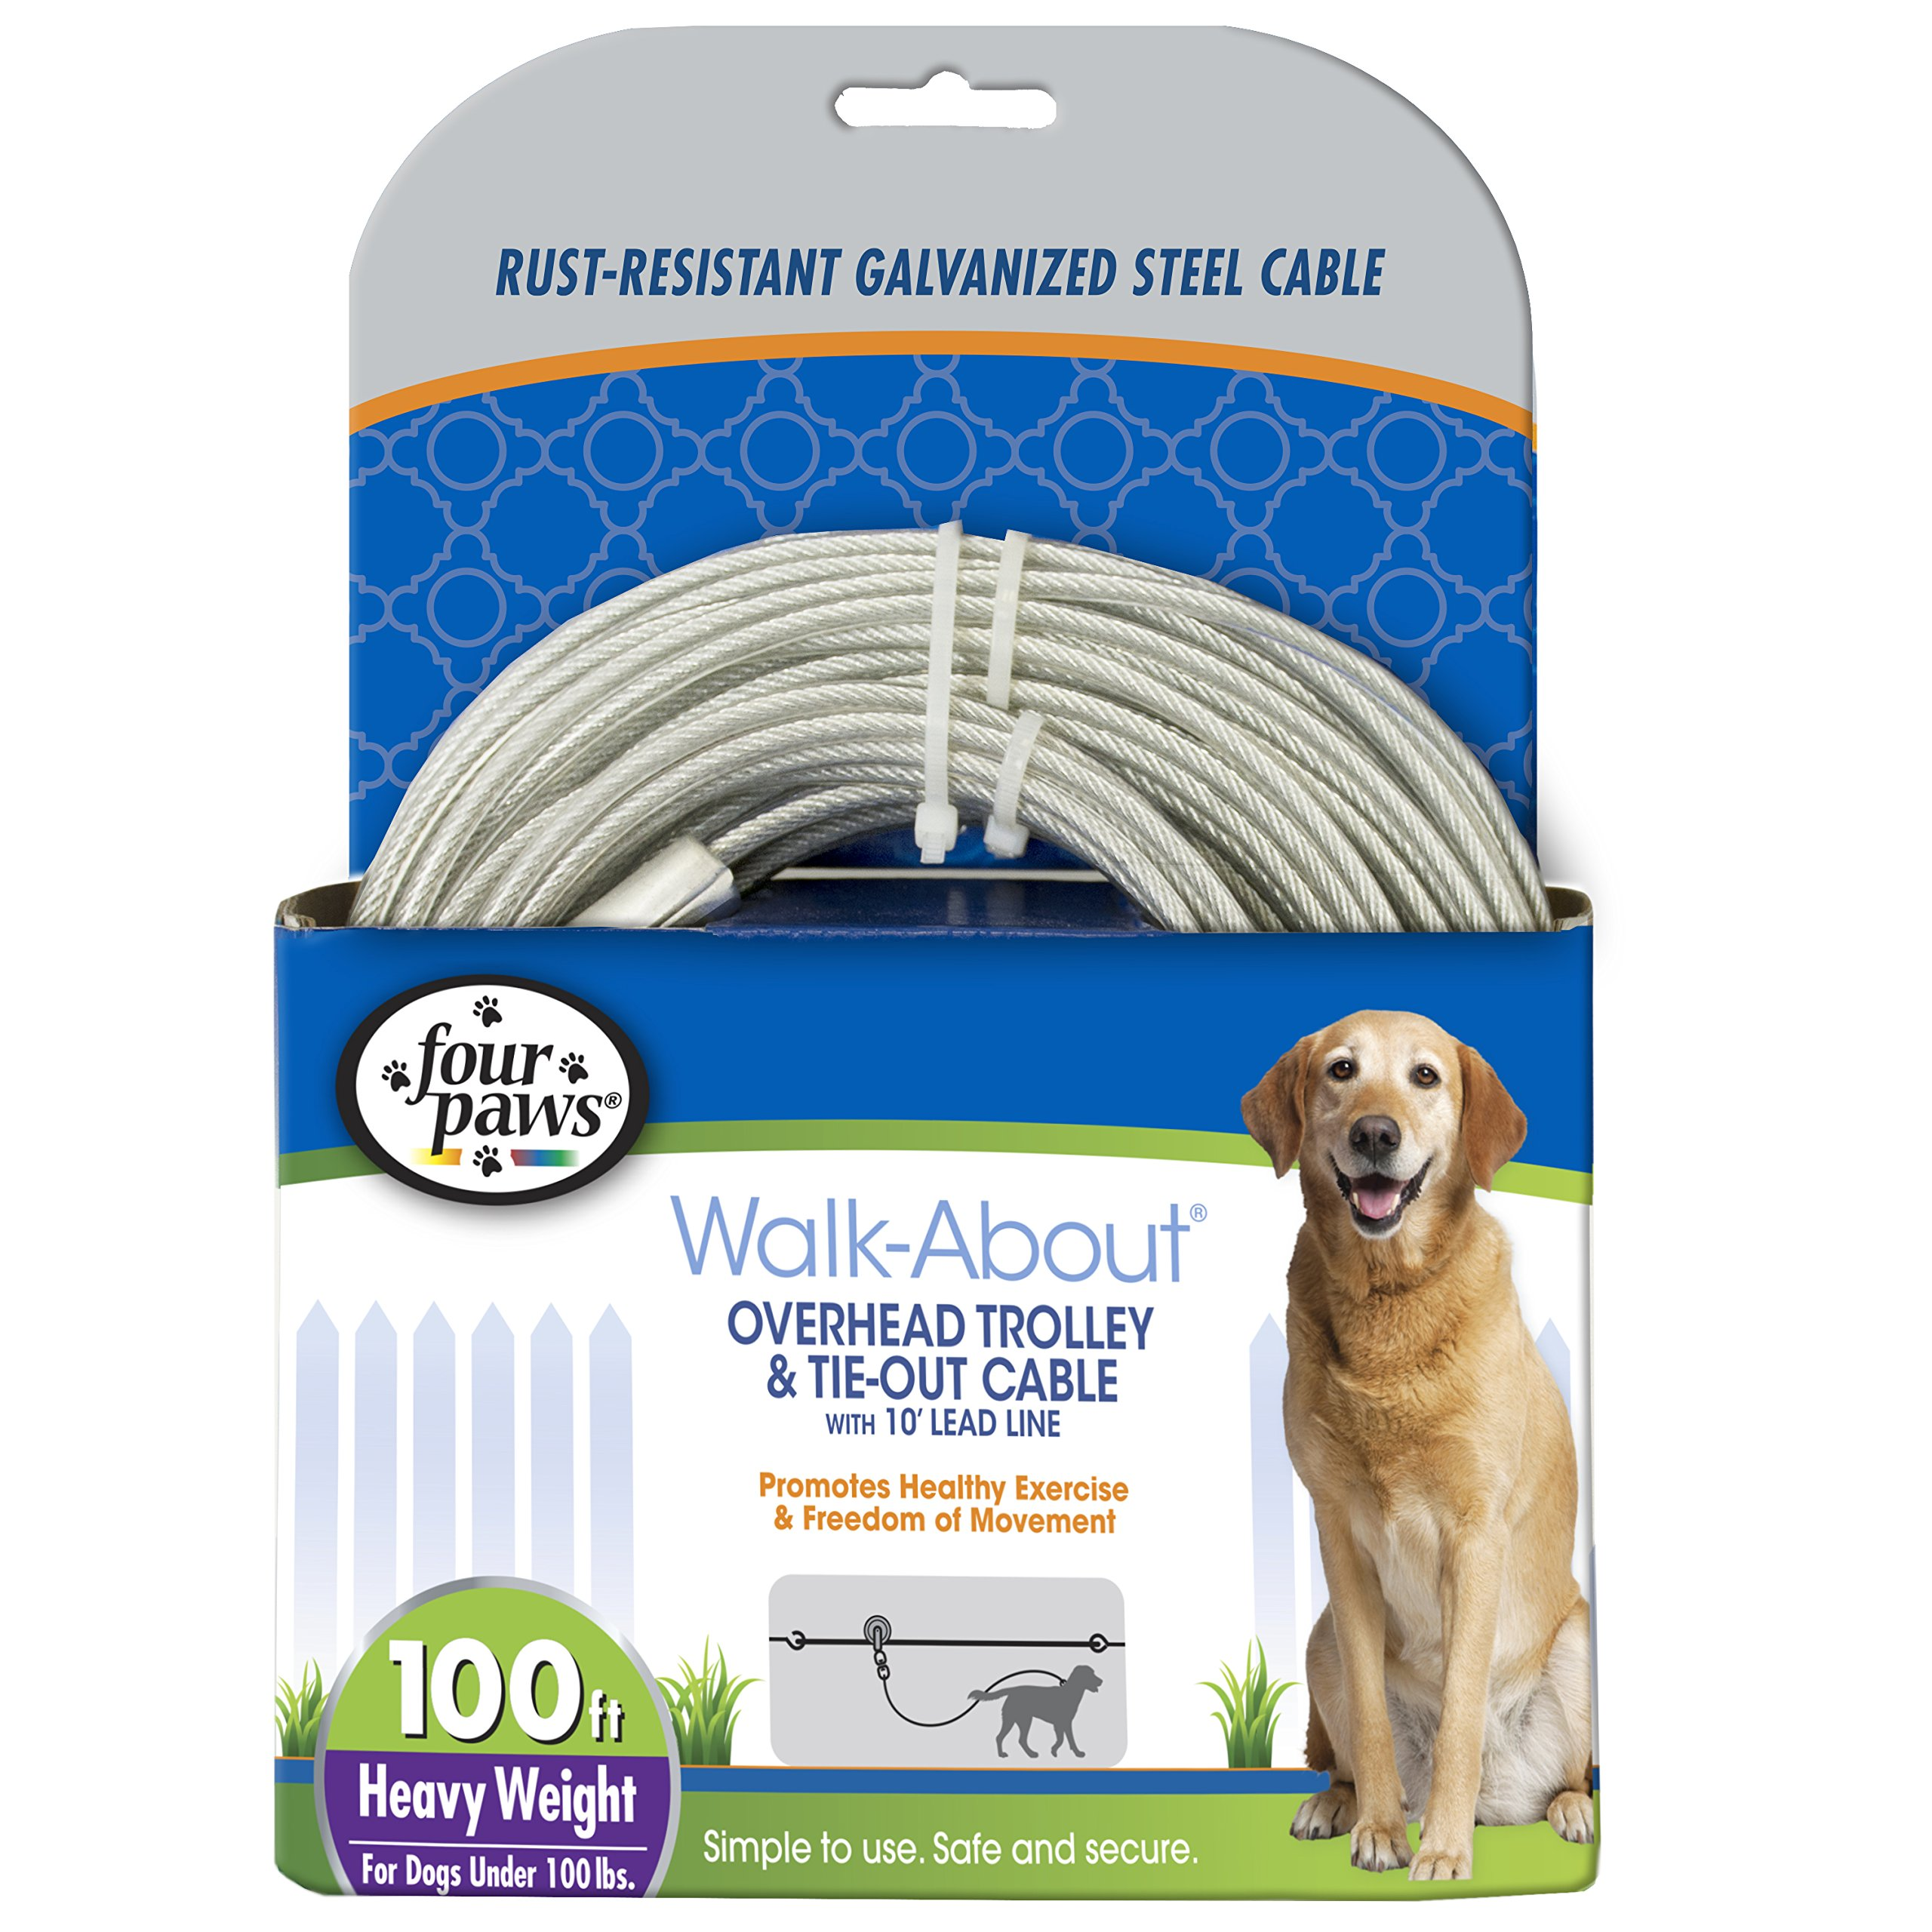 Four Paws Heavy Duty Dog Cable, 100-Foot Large Dog Tie Out Cable, Silver